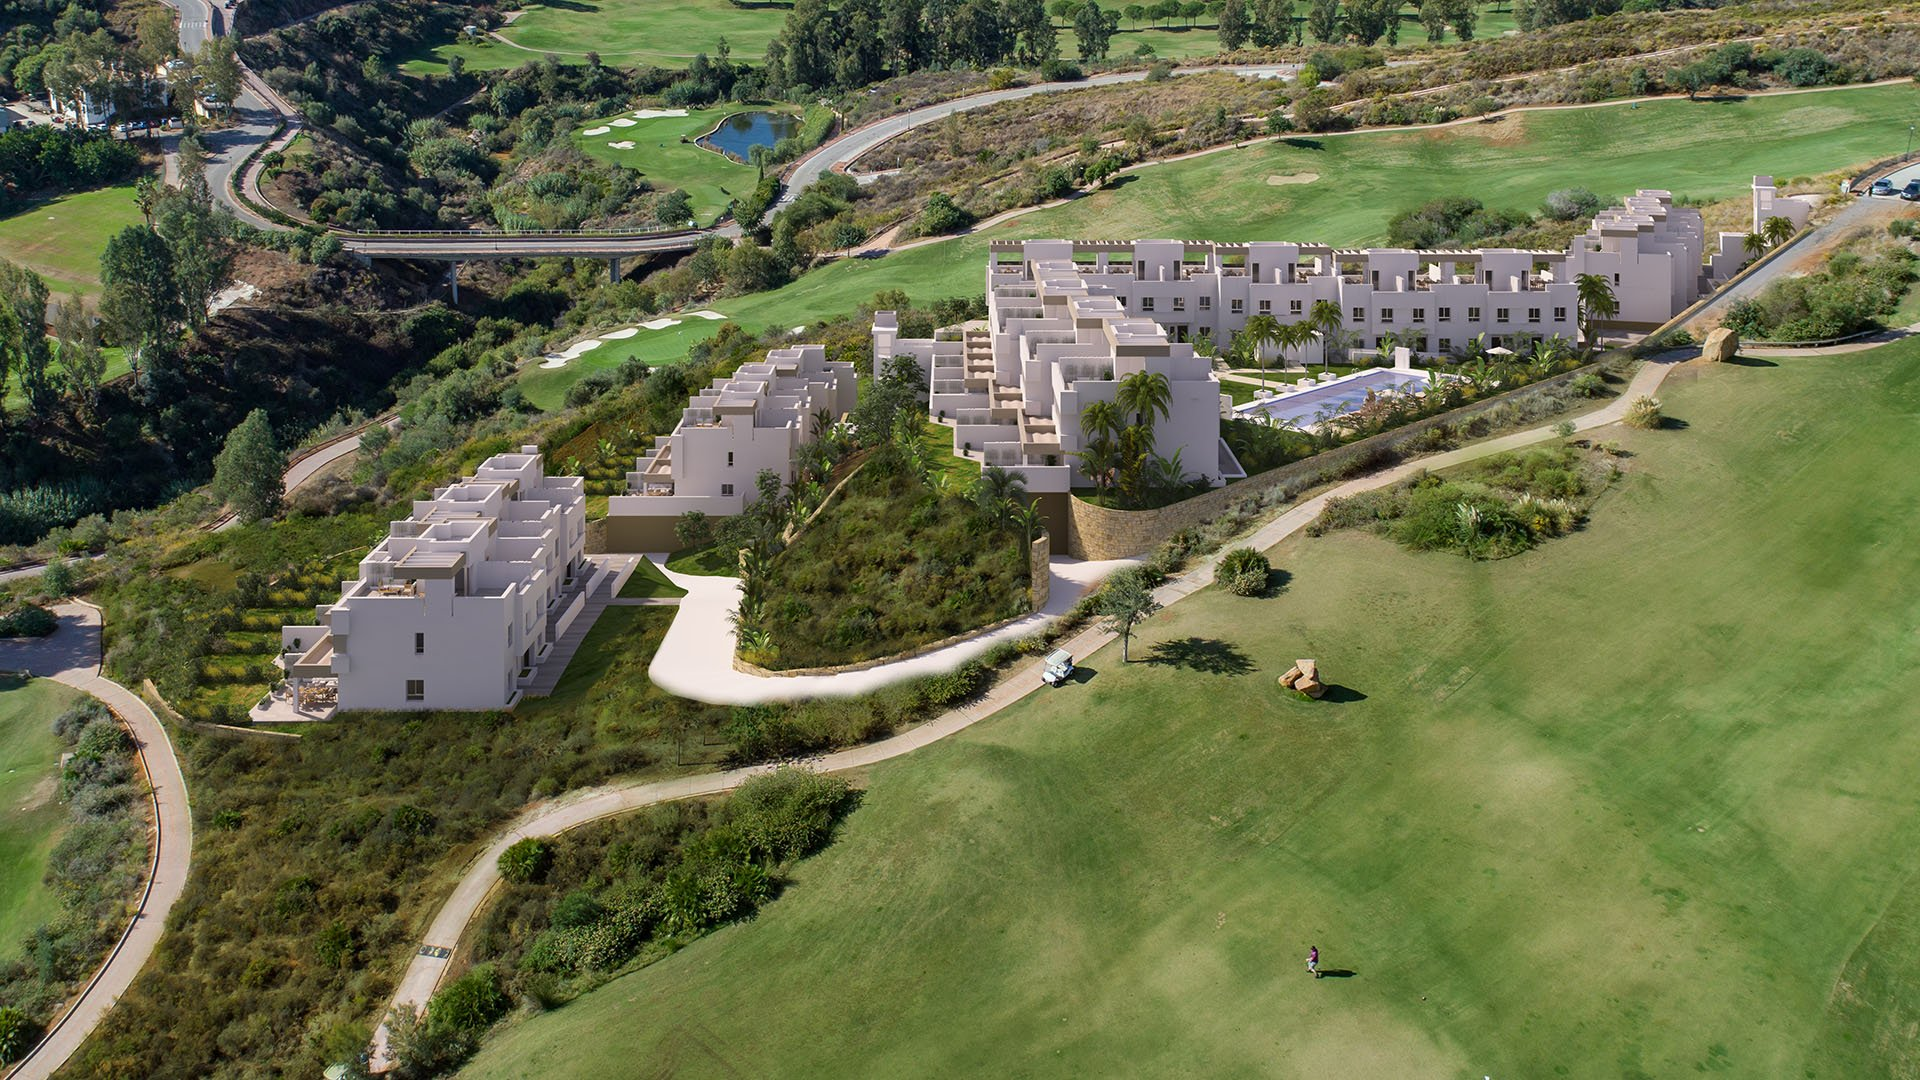 Natura La Cala Golf: Townhouses in het idyllisch landschap van La Cala Golf Resort